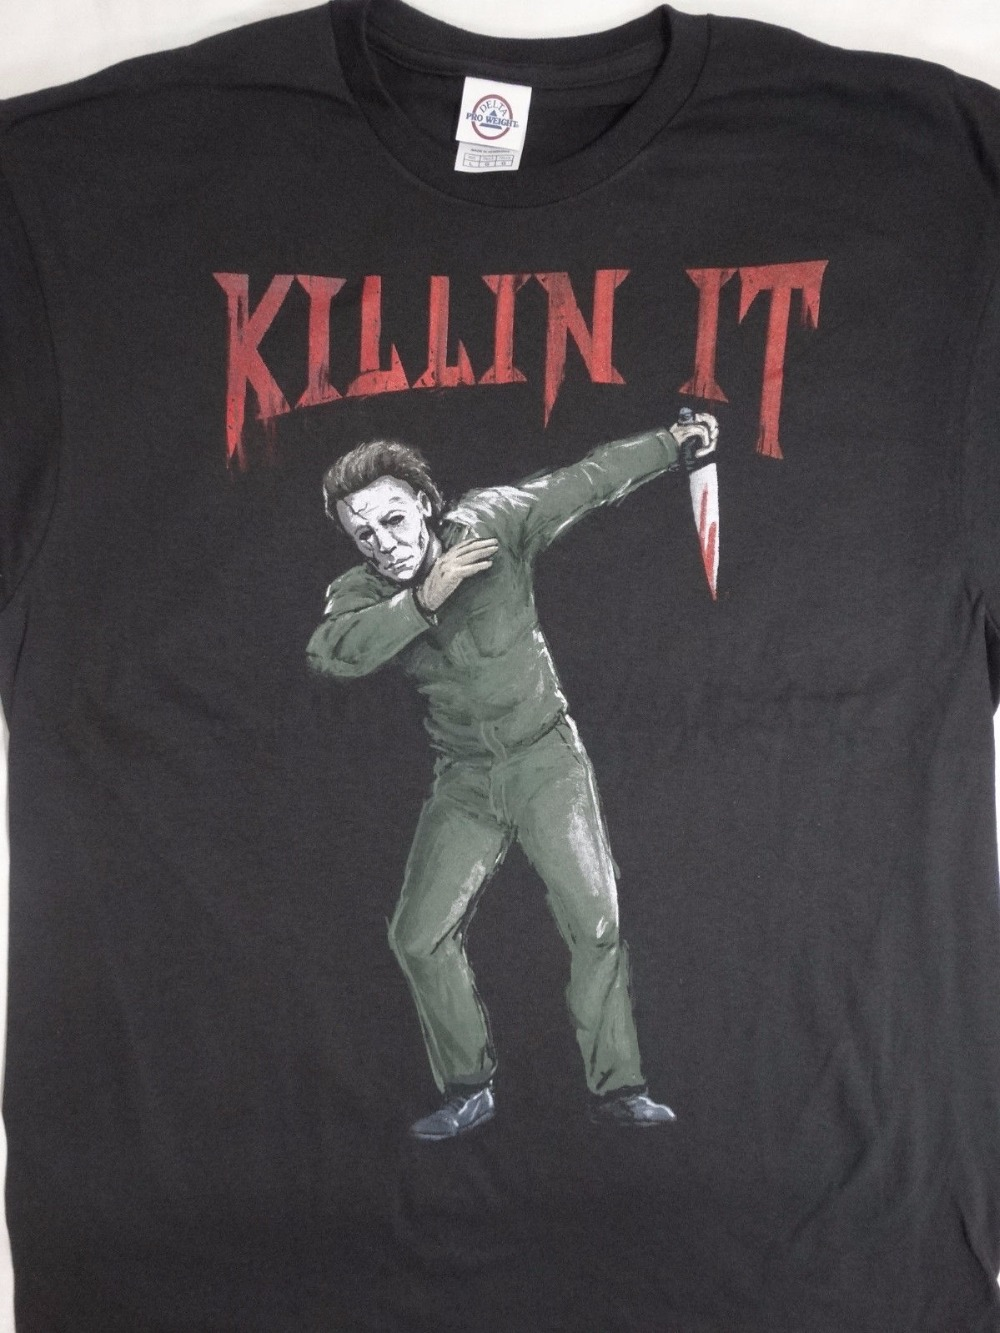 Printed Shirts Crew Neck Short Michael Myers Dabbing Killin It Horror Movie Printing Mac ...